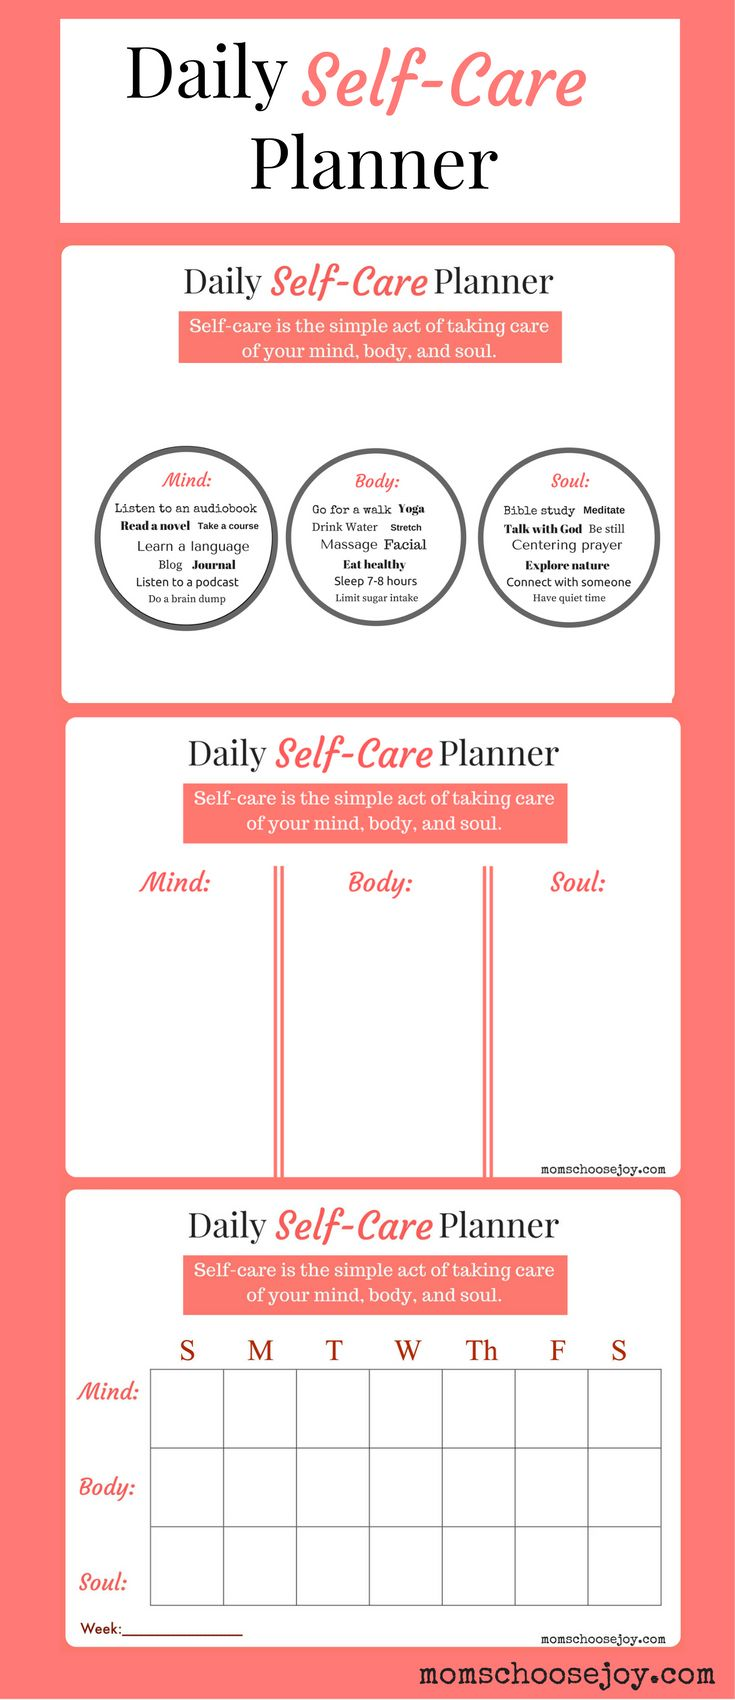 Do you prioritize SELF-CARE? A daily self-care planner will help you establish a routine to refresh and rejuvenate your MIND, BODY, and SOUL each day. Request your free Daily Self-Care Planner Printable and start caring for yourself today!